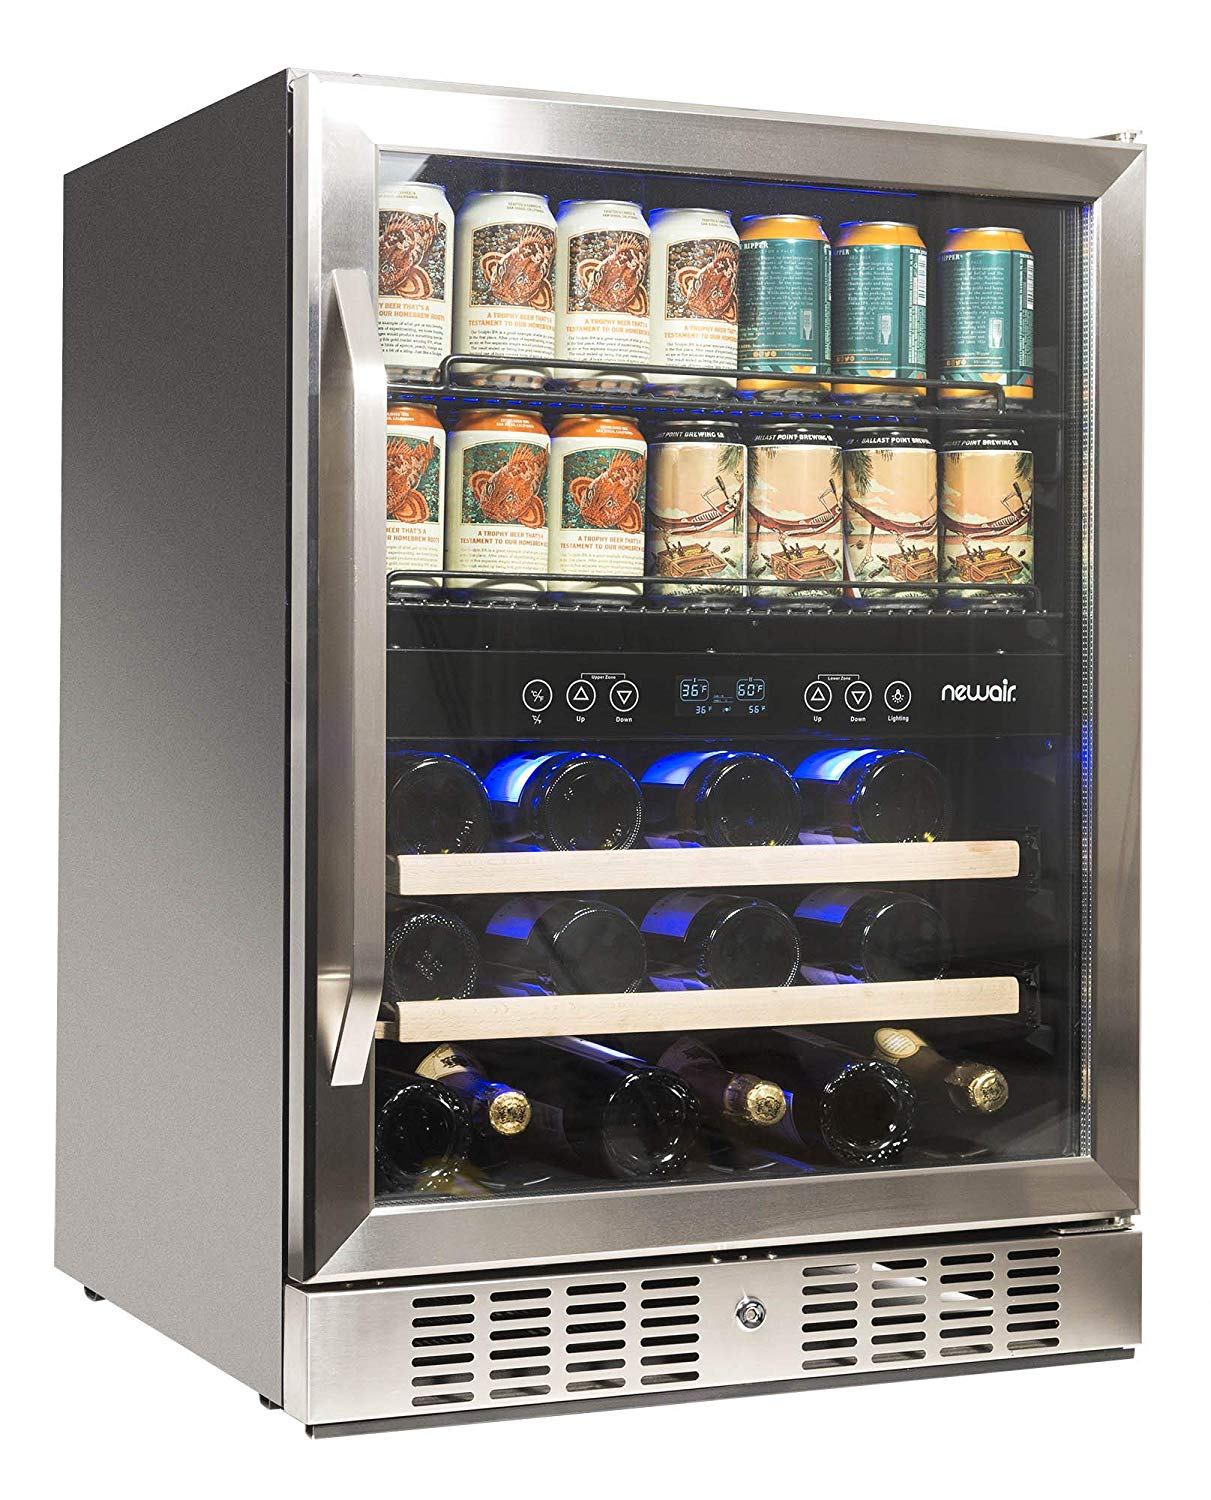 NewAir AWB-400DB Dual Zone Beverage Cooler, Built-in Stainless Steel Refrigerator for Soda Beer or Wine, Holds 22 Bottles and 70 Cans